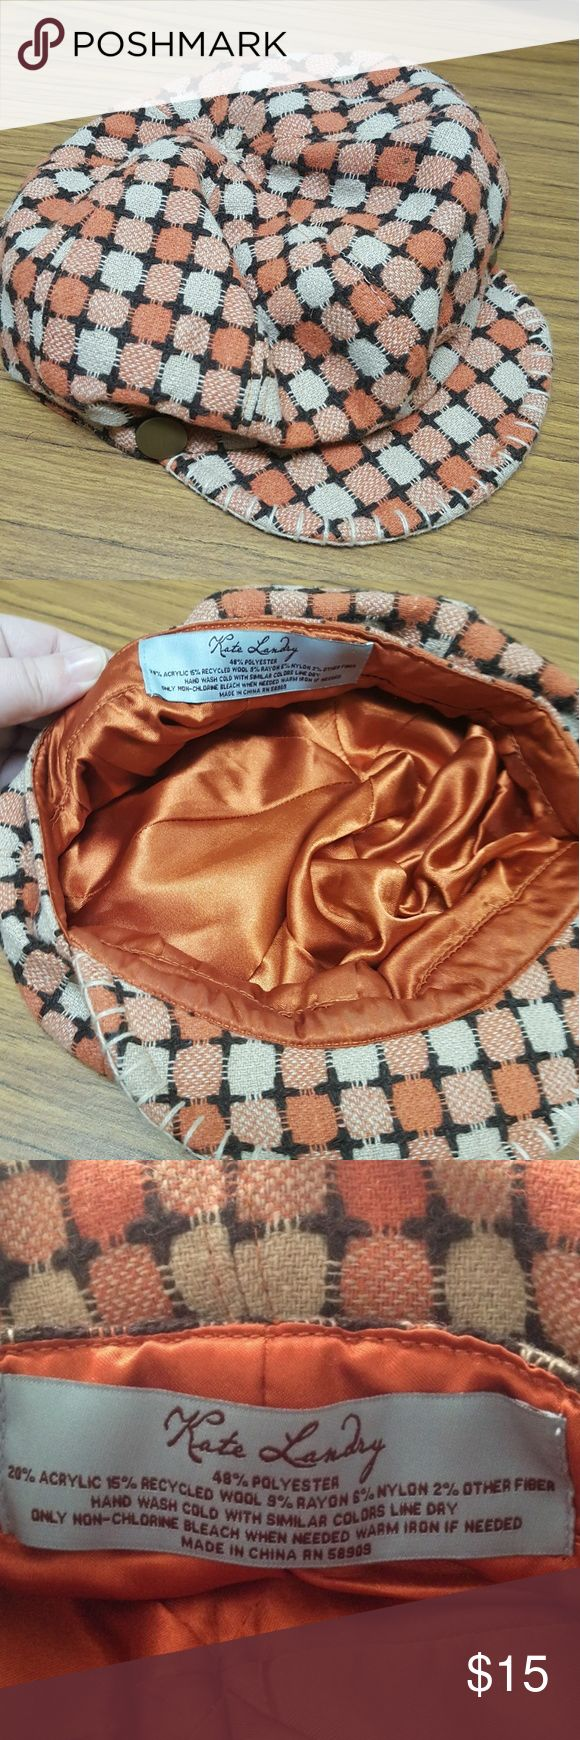 Kate Landry Page Boy Hat Perfect for spicing up your outfit with a little vintage flair. It's orange with dark brown and light brown. Lightly worn, excellent condition. Kate Landry Accessories Hats